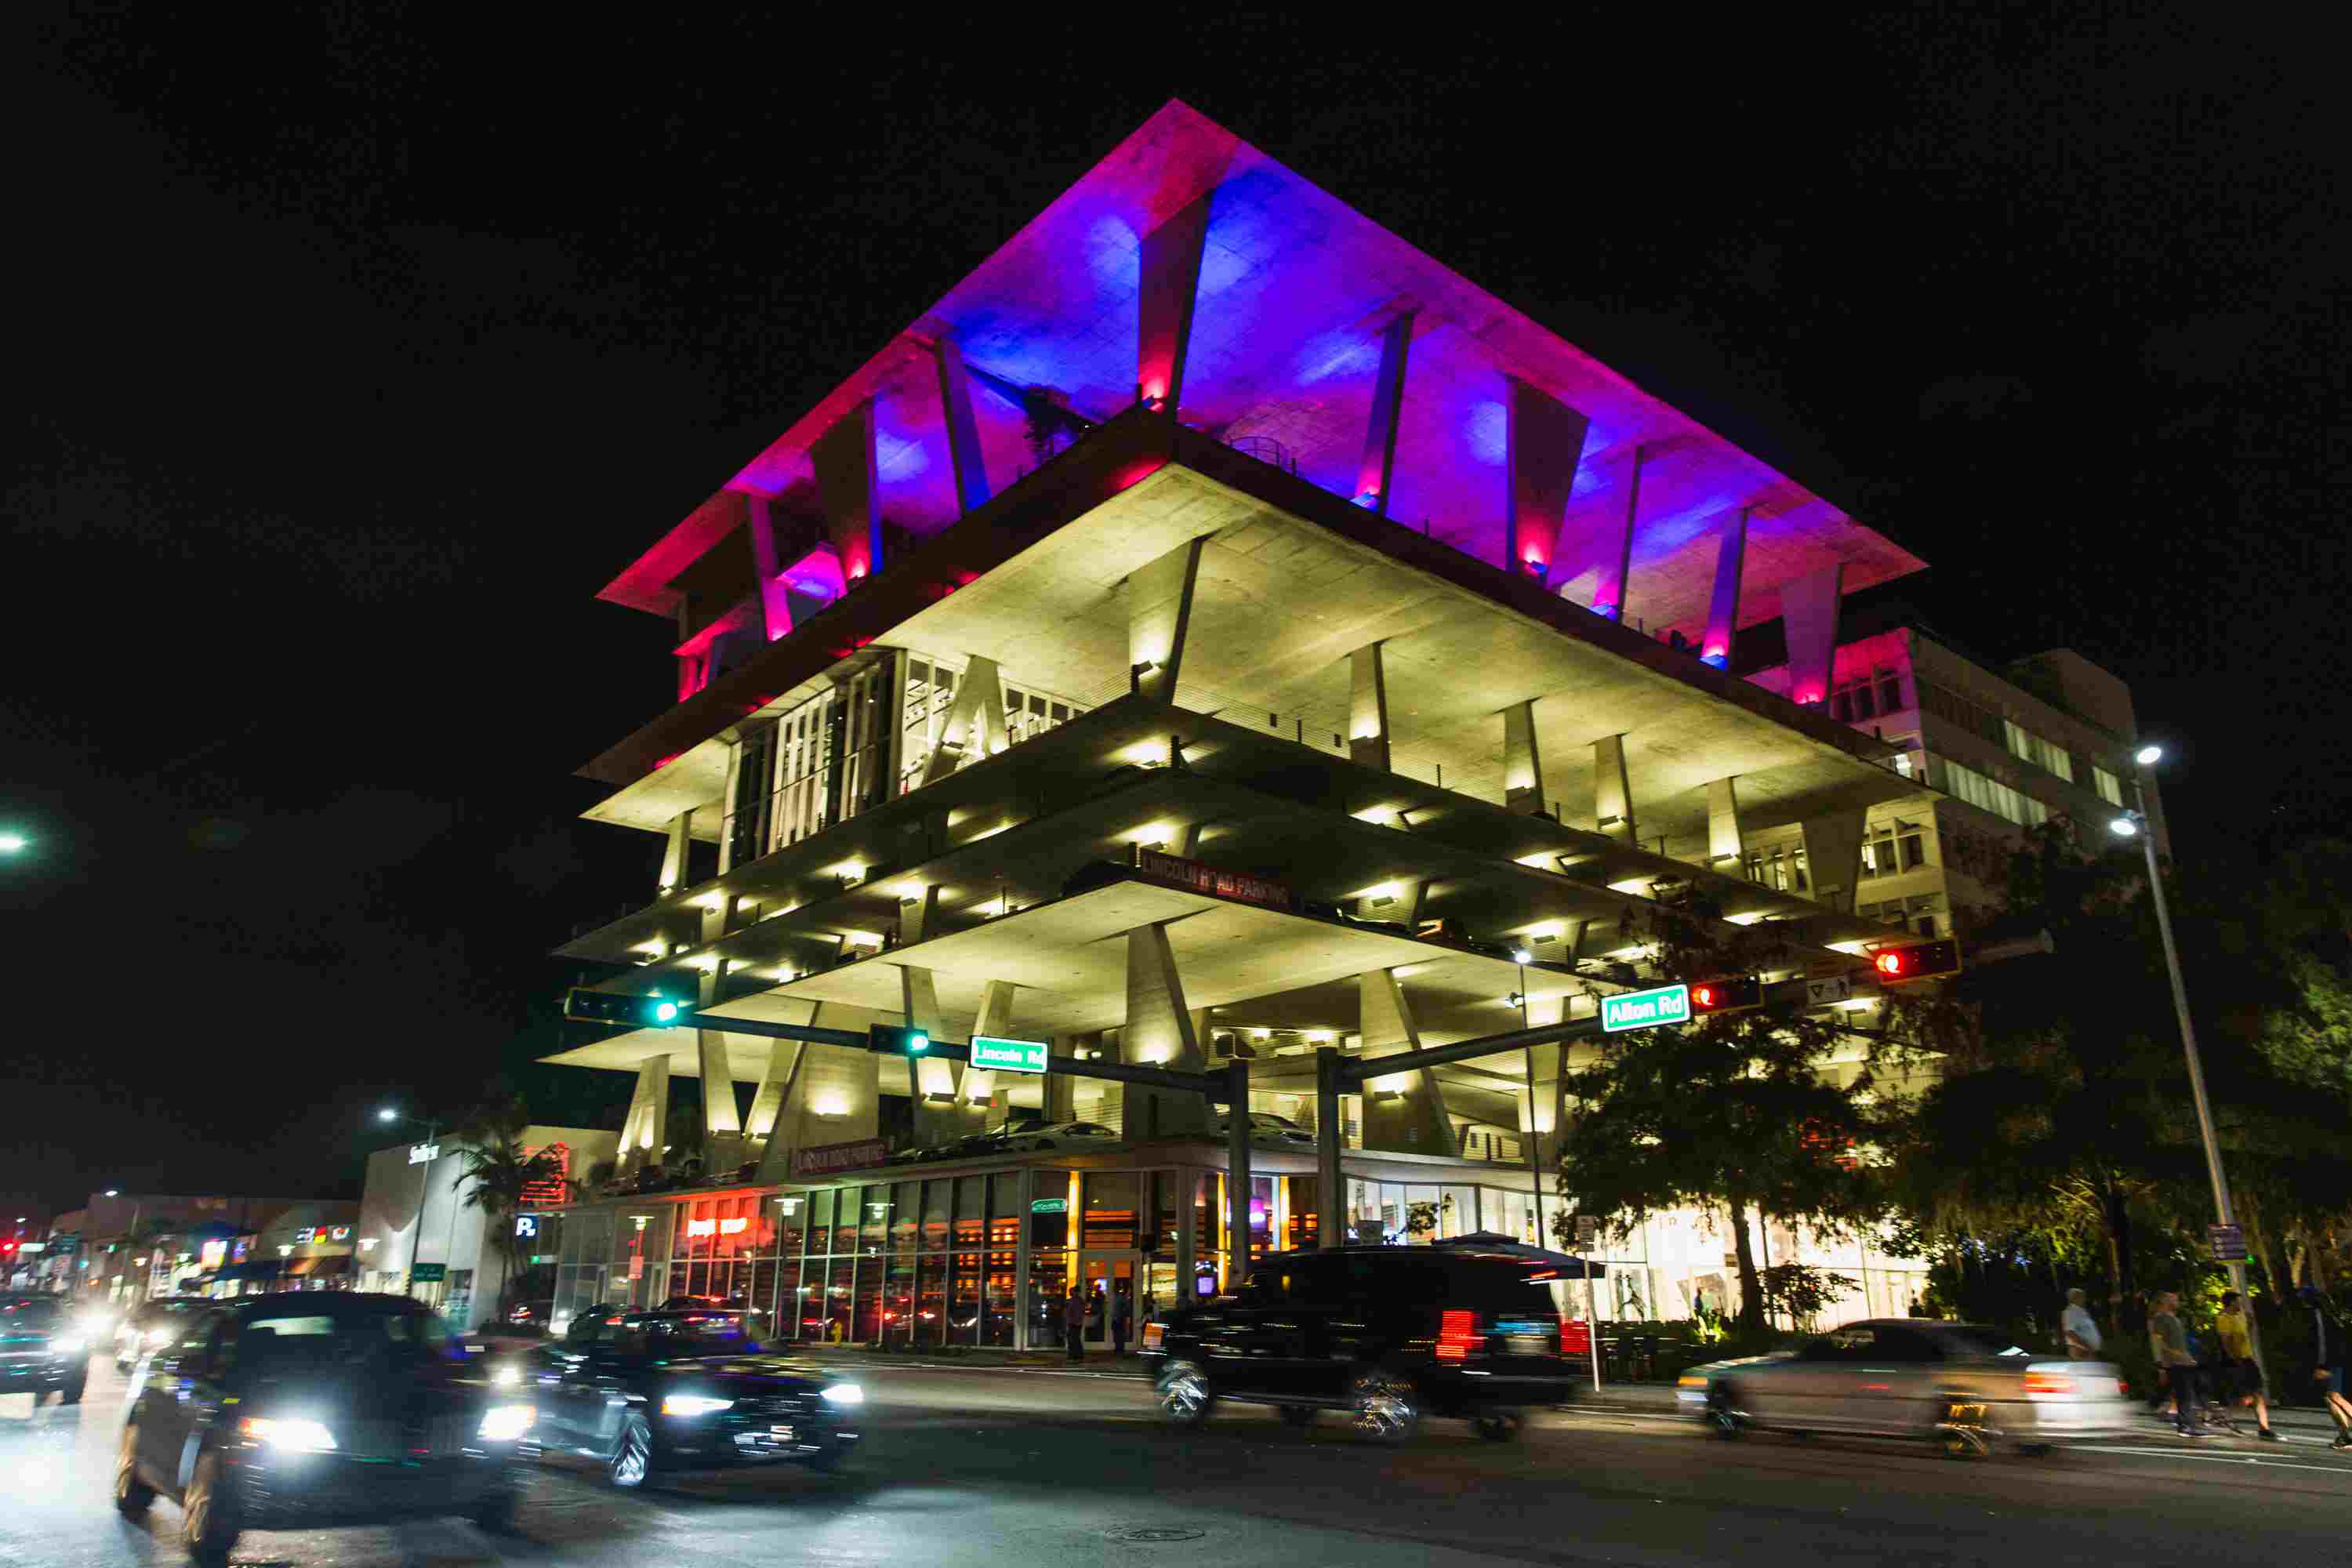 night view of multi-level parking garage, lit with purple lights on the top floor